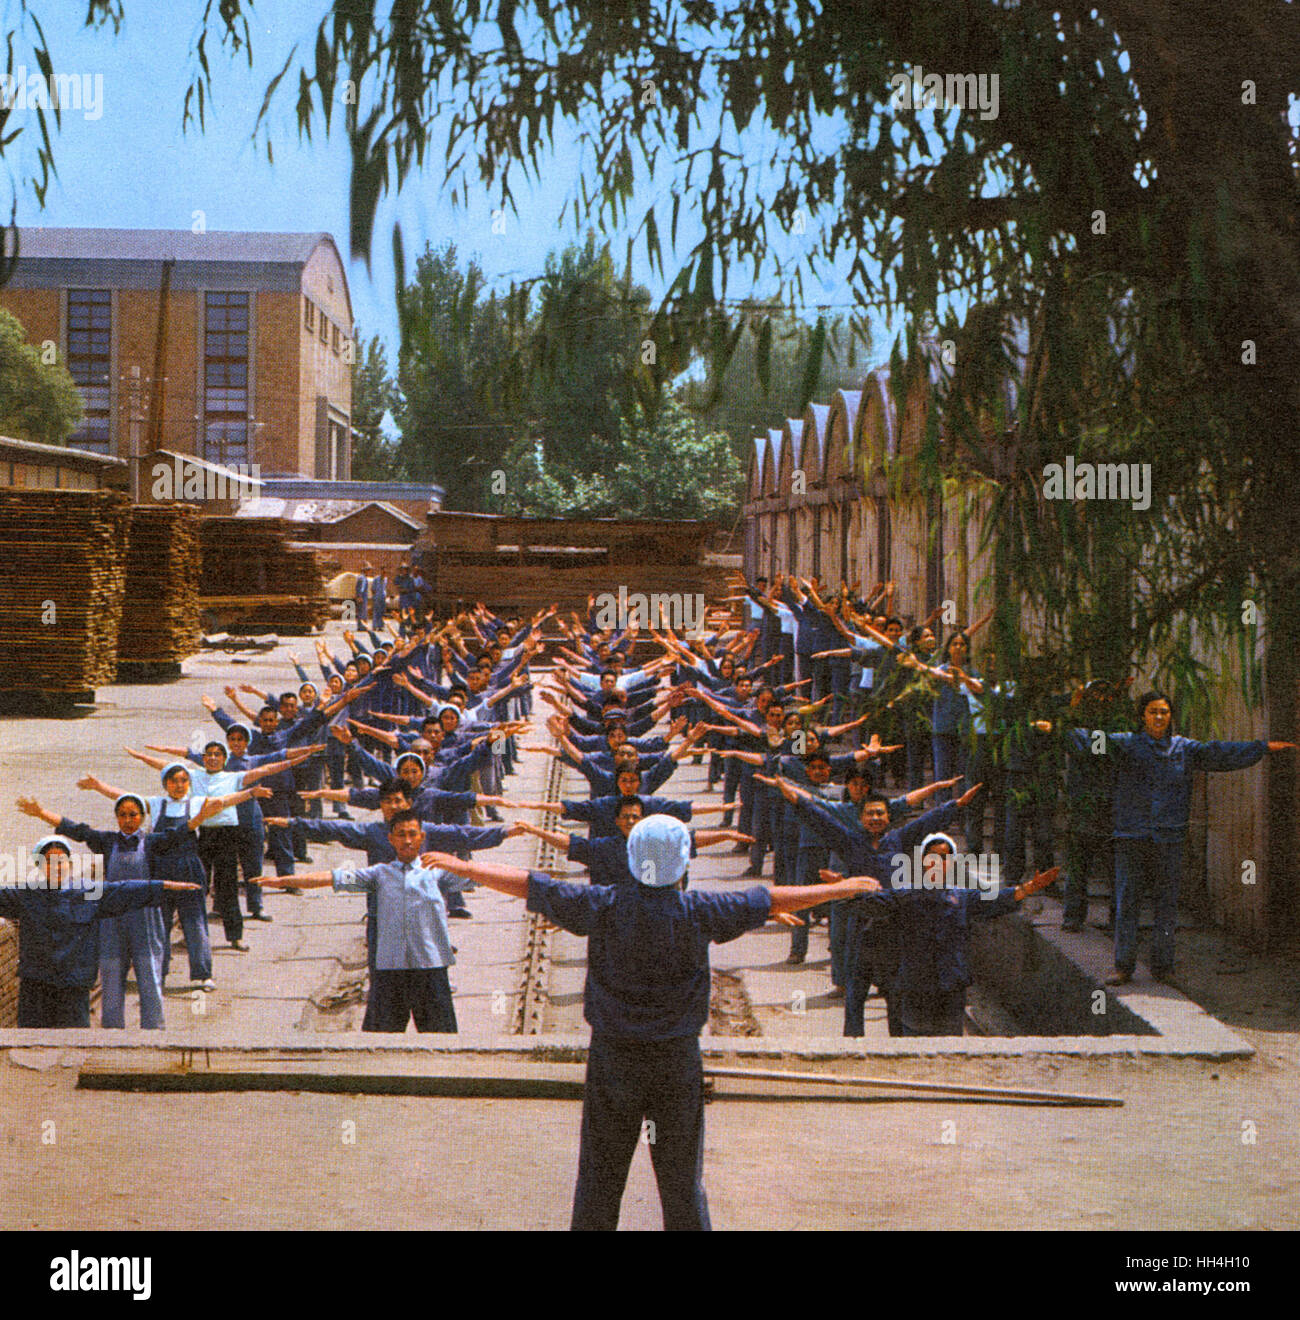 Communal exercise session for timberyard workers during the Cultural Revolution era in Communist China. - Stock Image